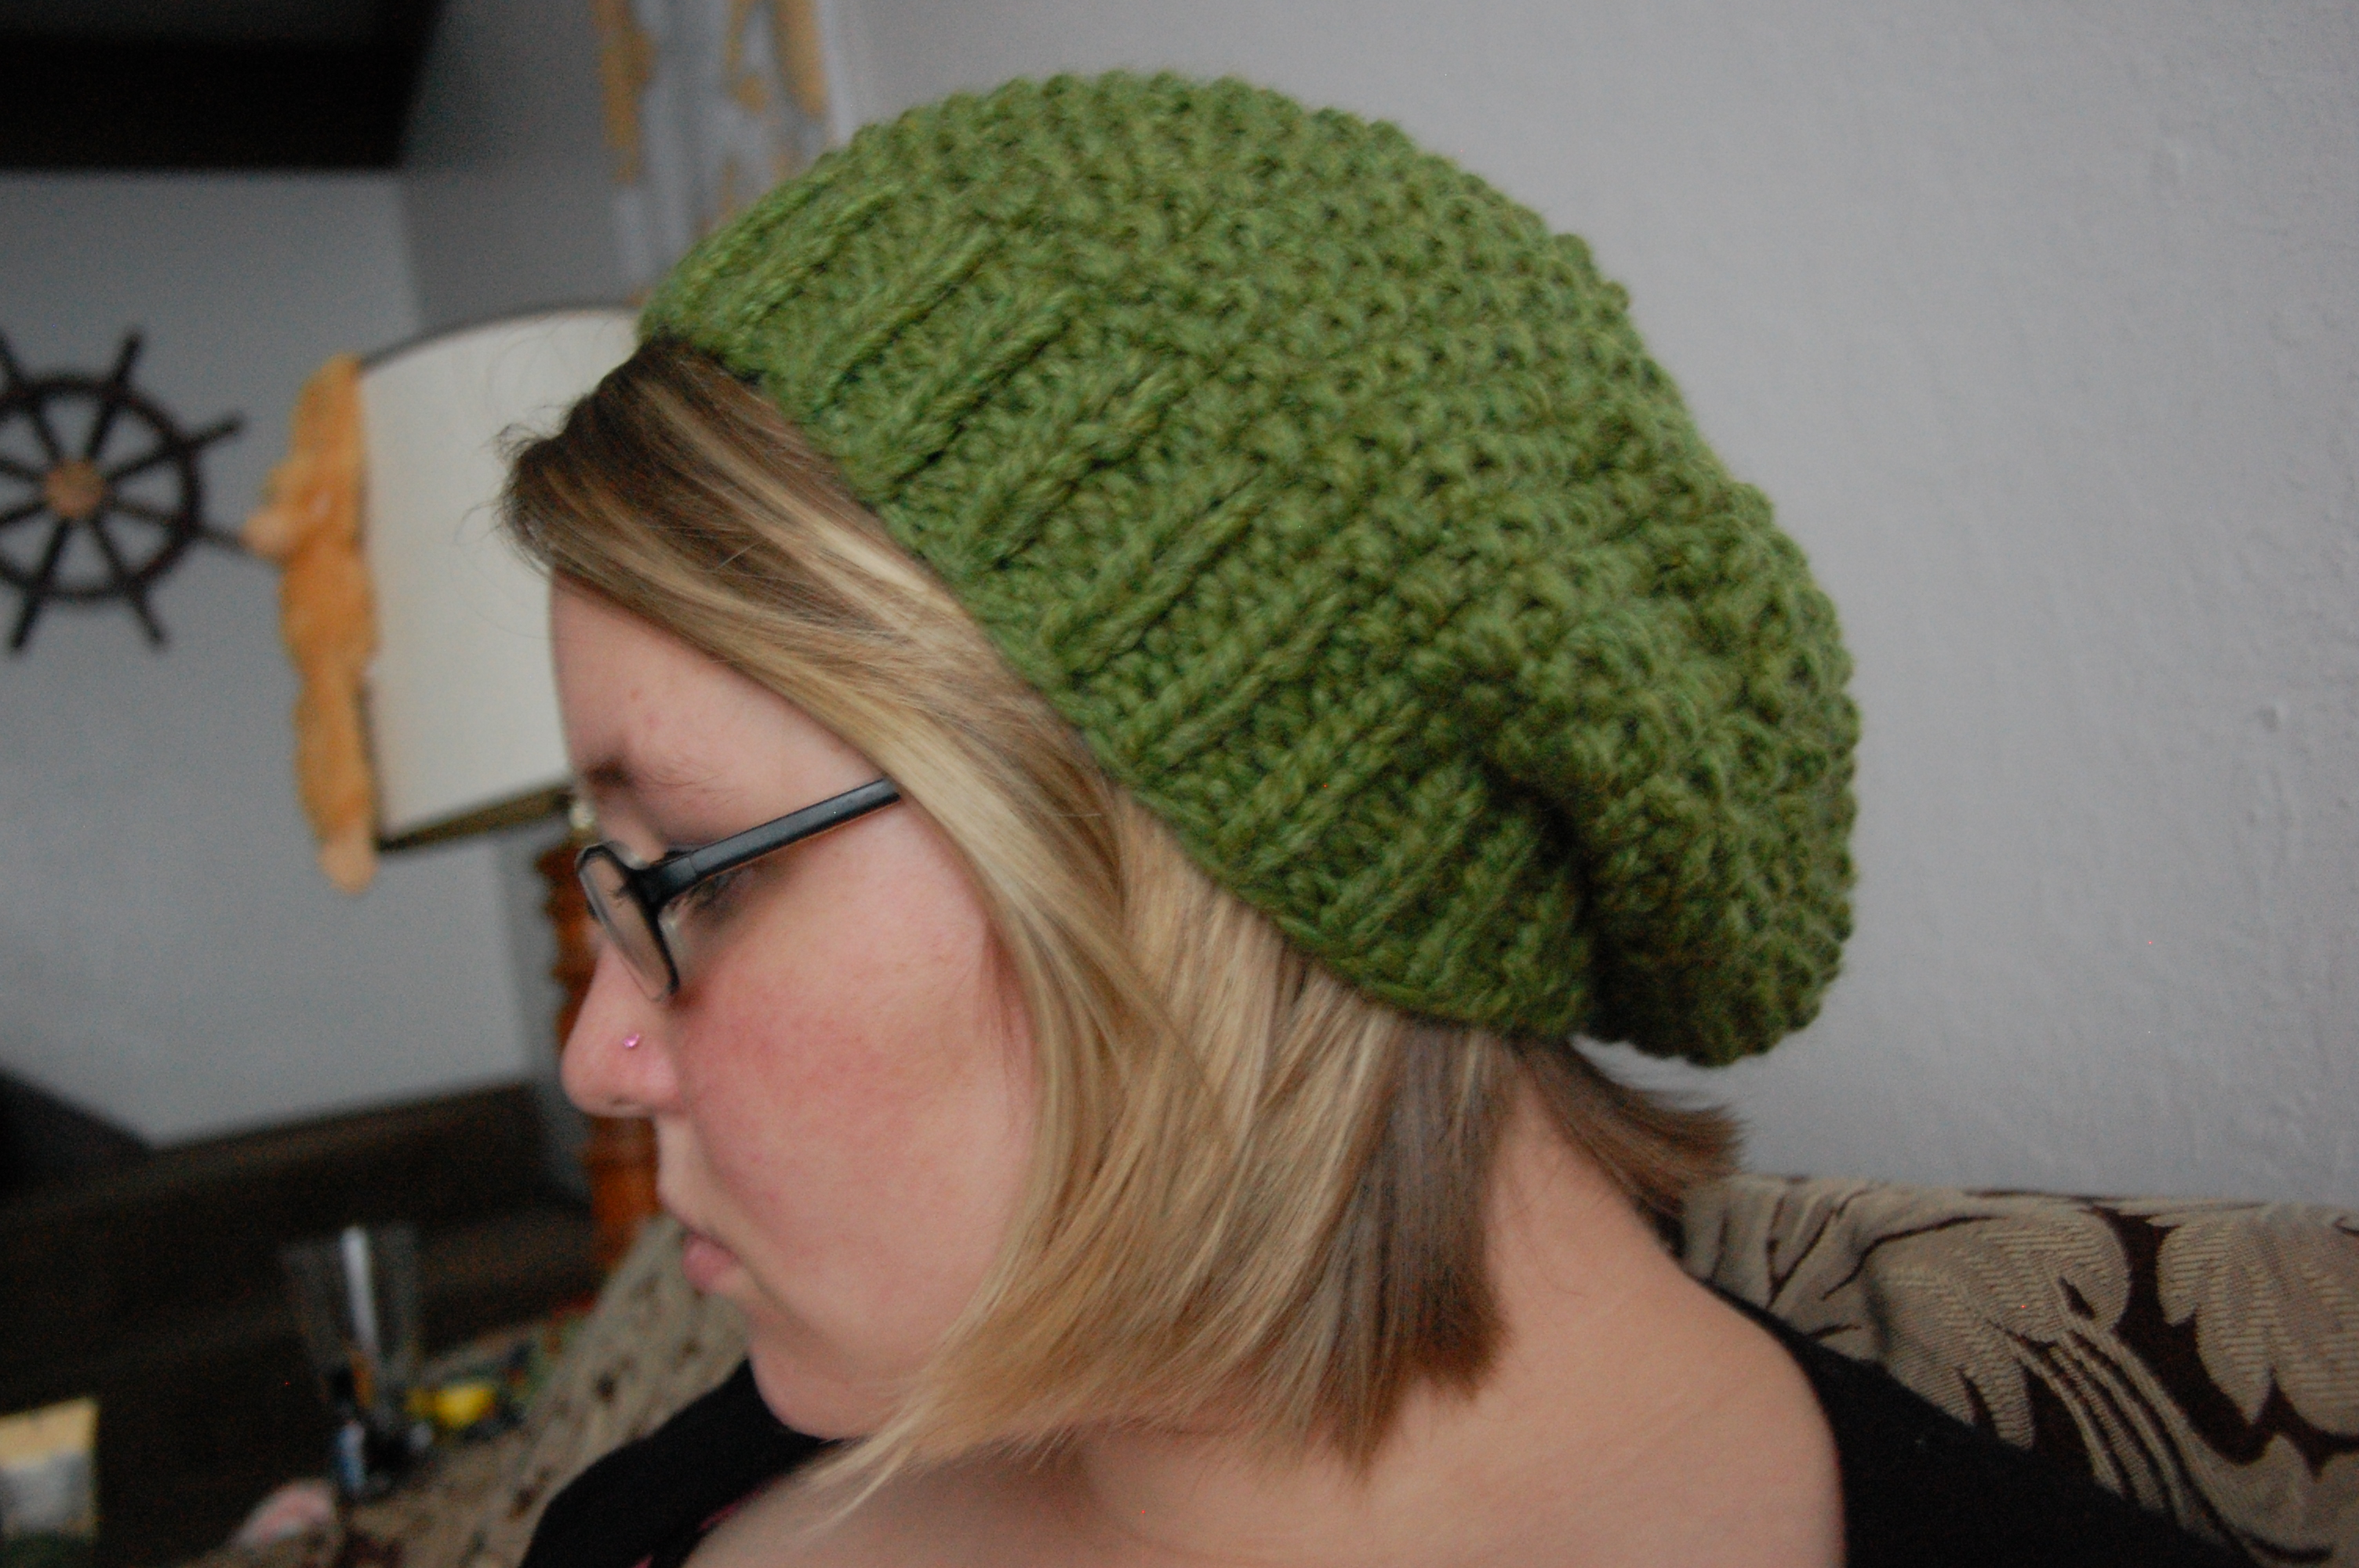 Lemon Grass Hat Knittybutton